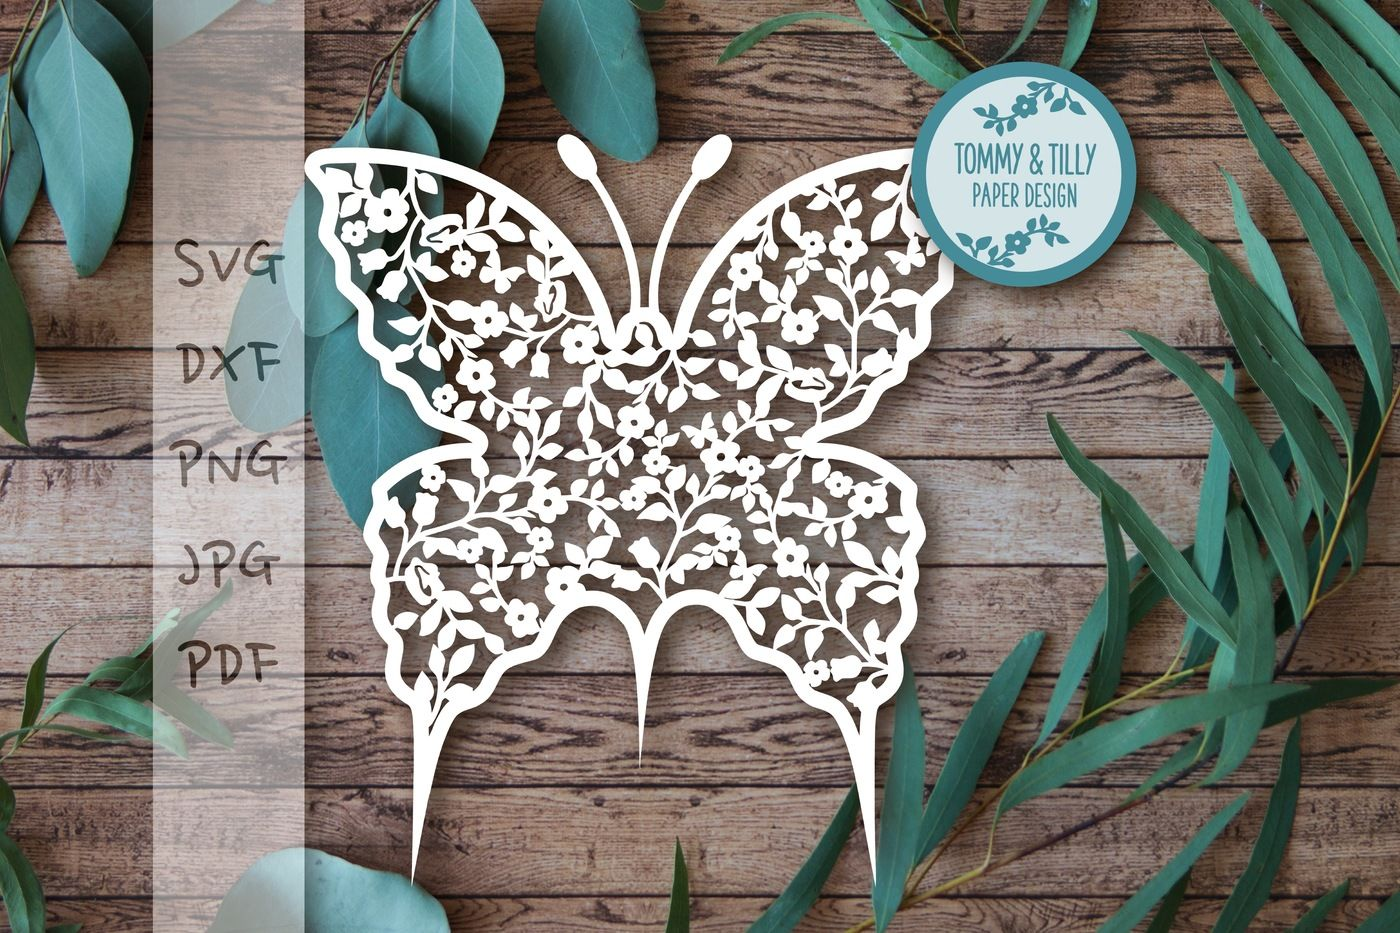 Vintage Flower Butterfly Svg Dxf Png Pdf Jpg By Tommy And Tilly